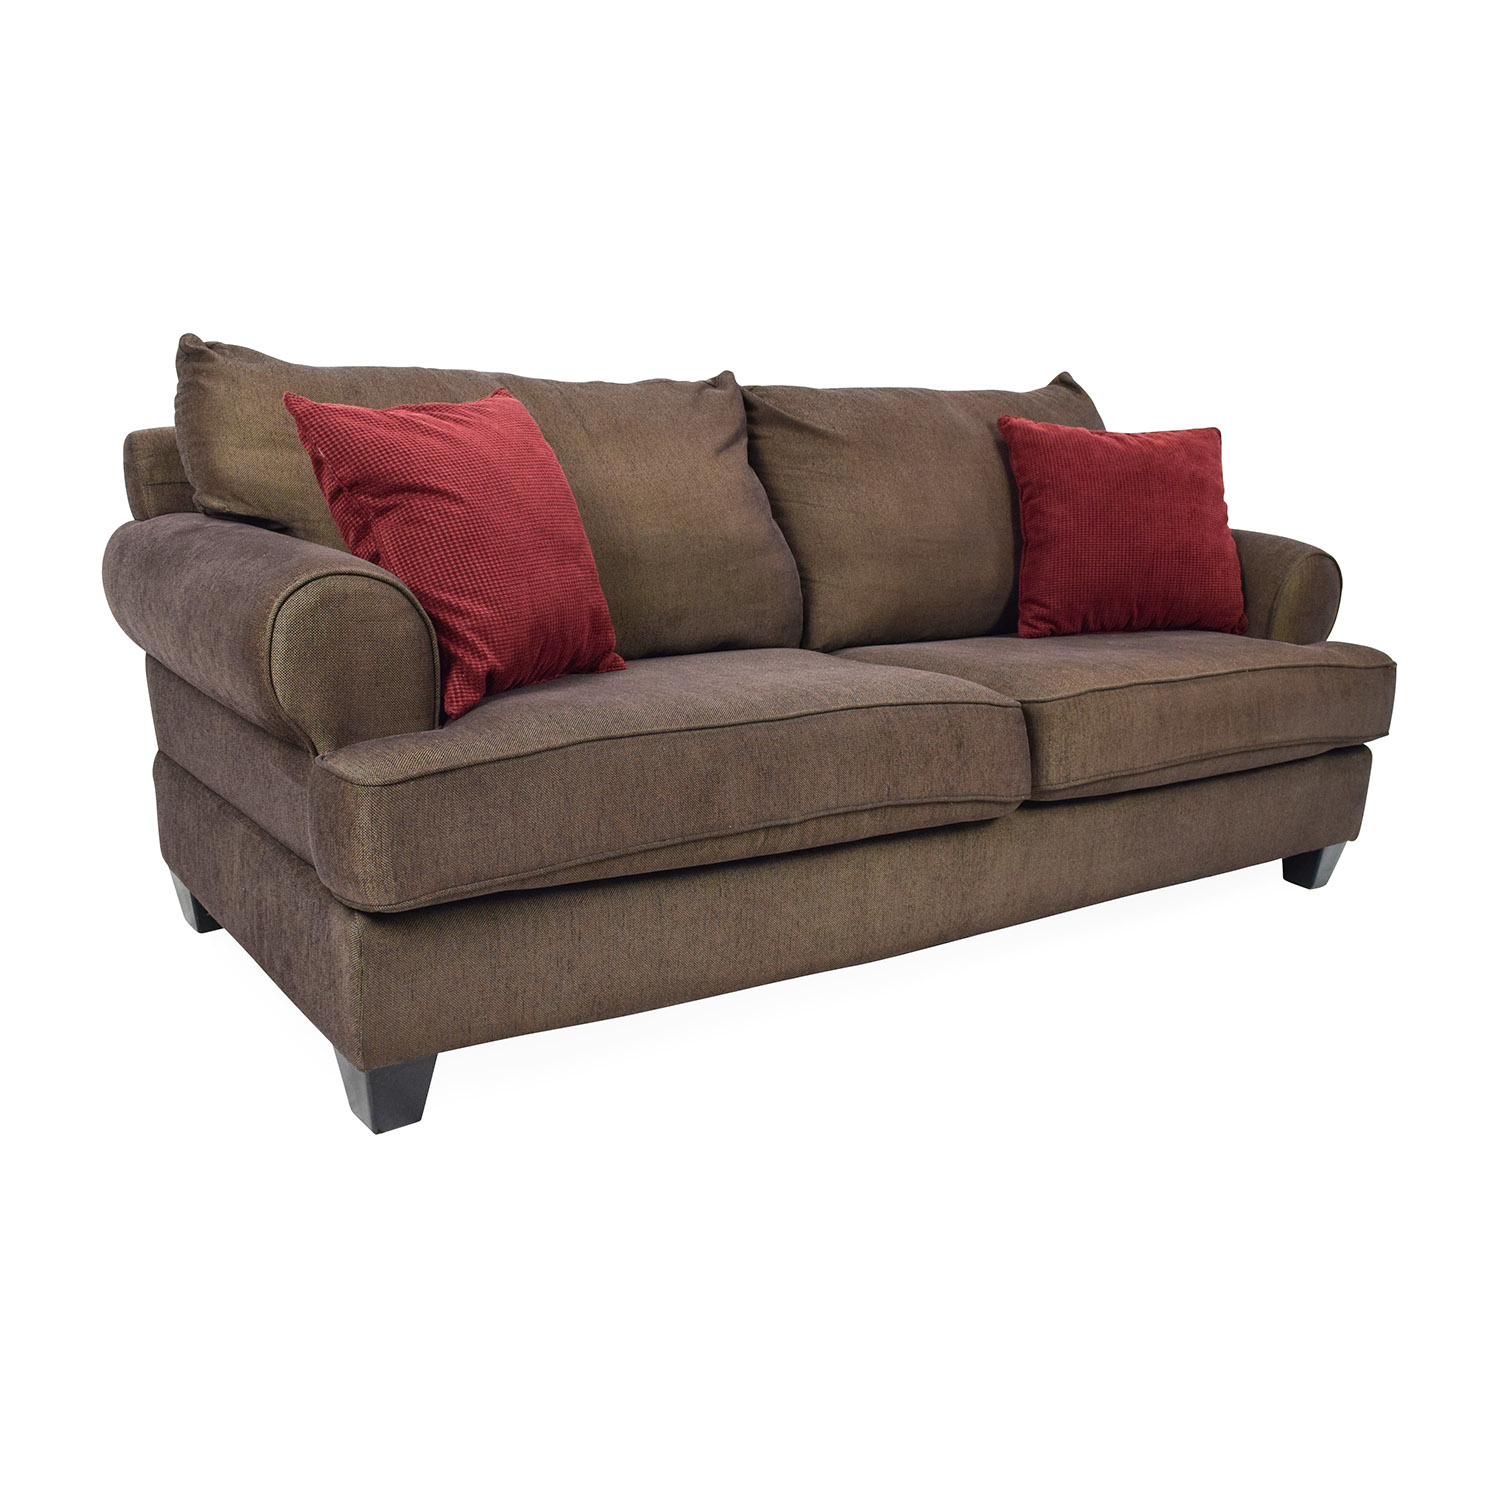 Second Hand Leather Sofas Somerset: Brown Fabric Sofa / Sofas